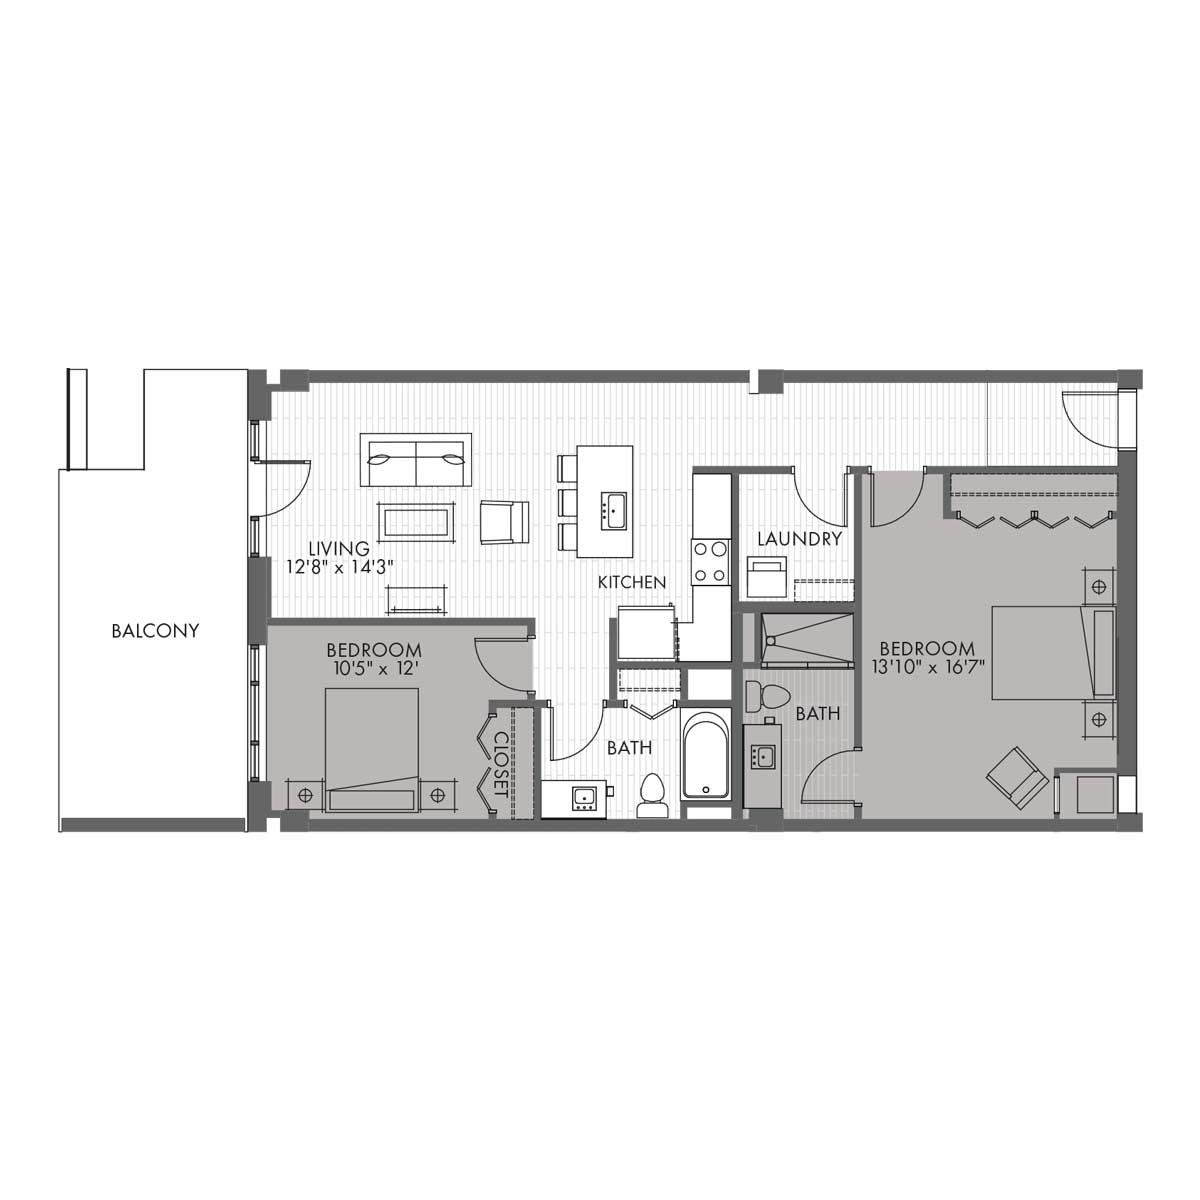 Townhome Two Bedroom - Style 2A